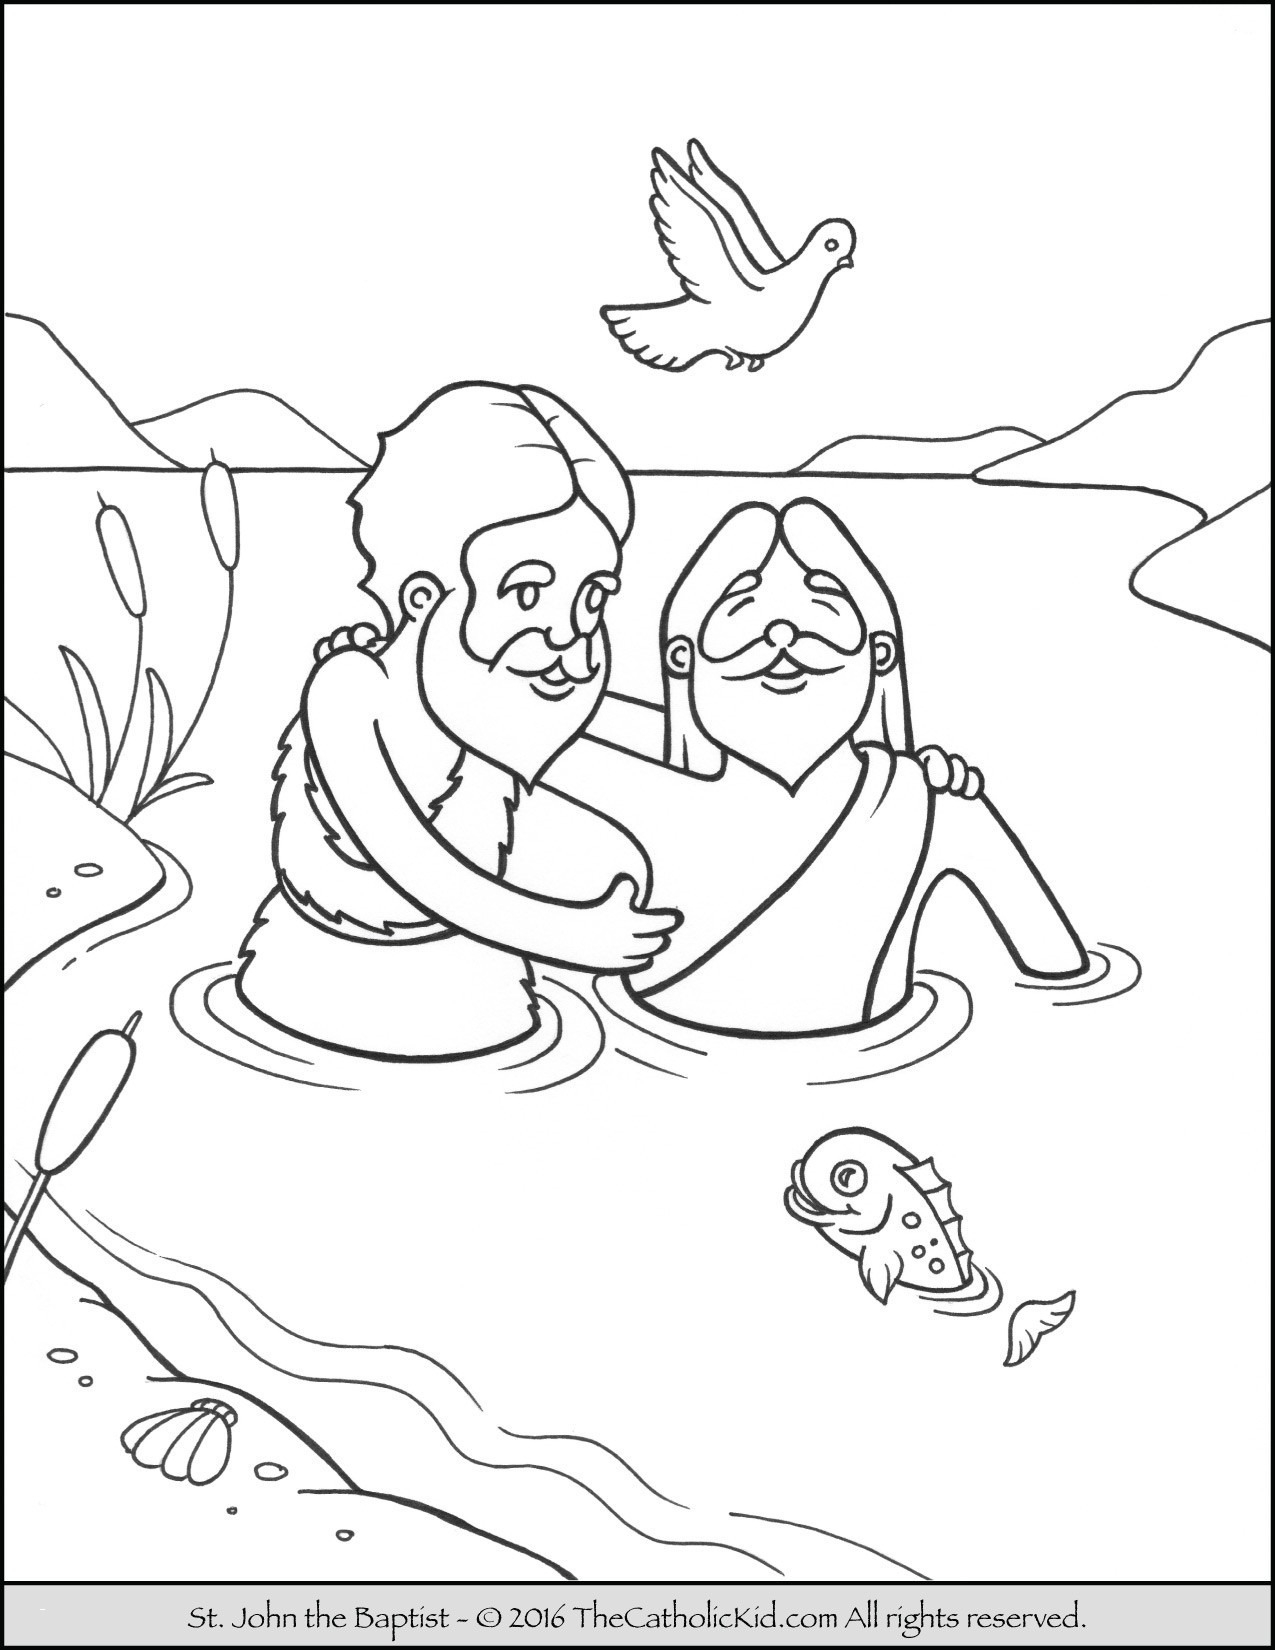 baptism coloring pages Collection-Baptism Coloring Page Coloring Jesus Elegant Baptism Coloring Pages Elegant 20-r